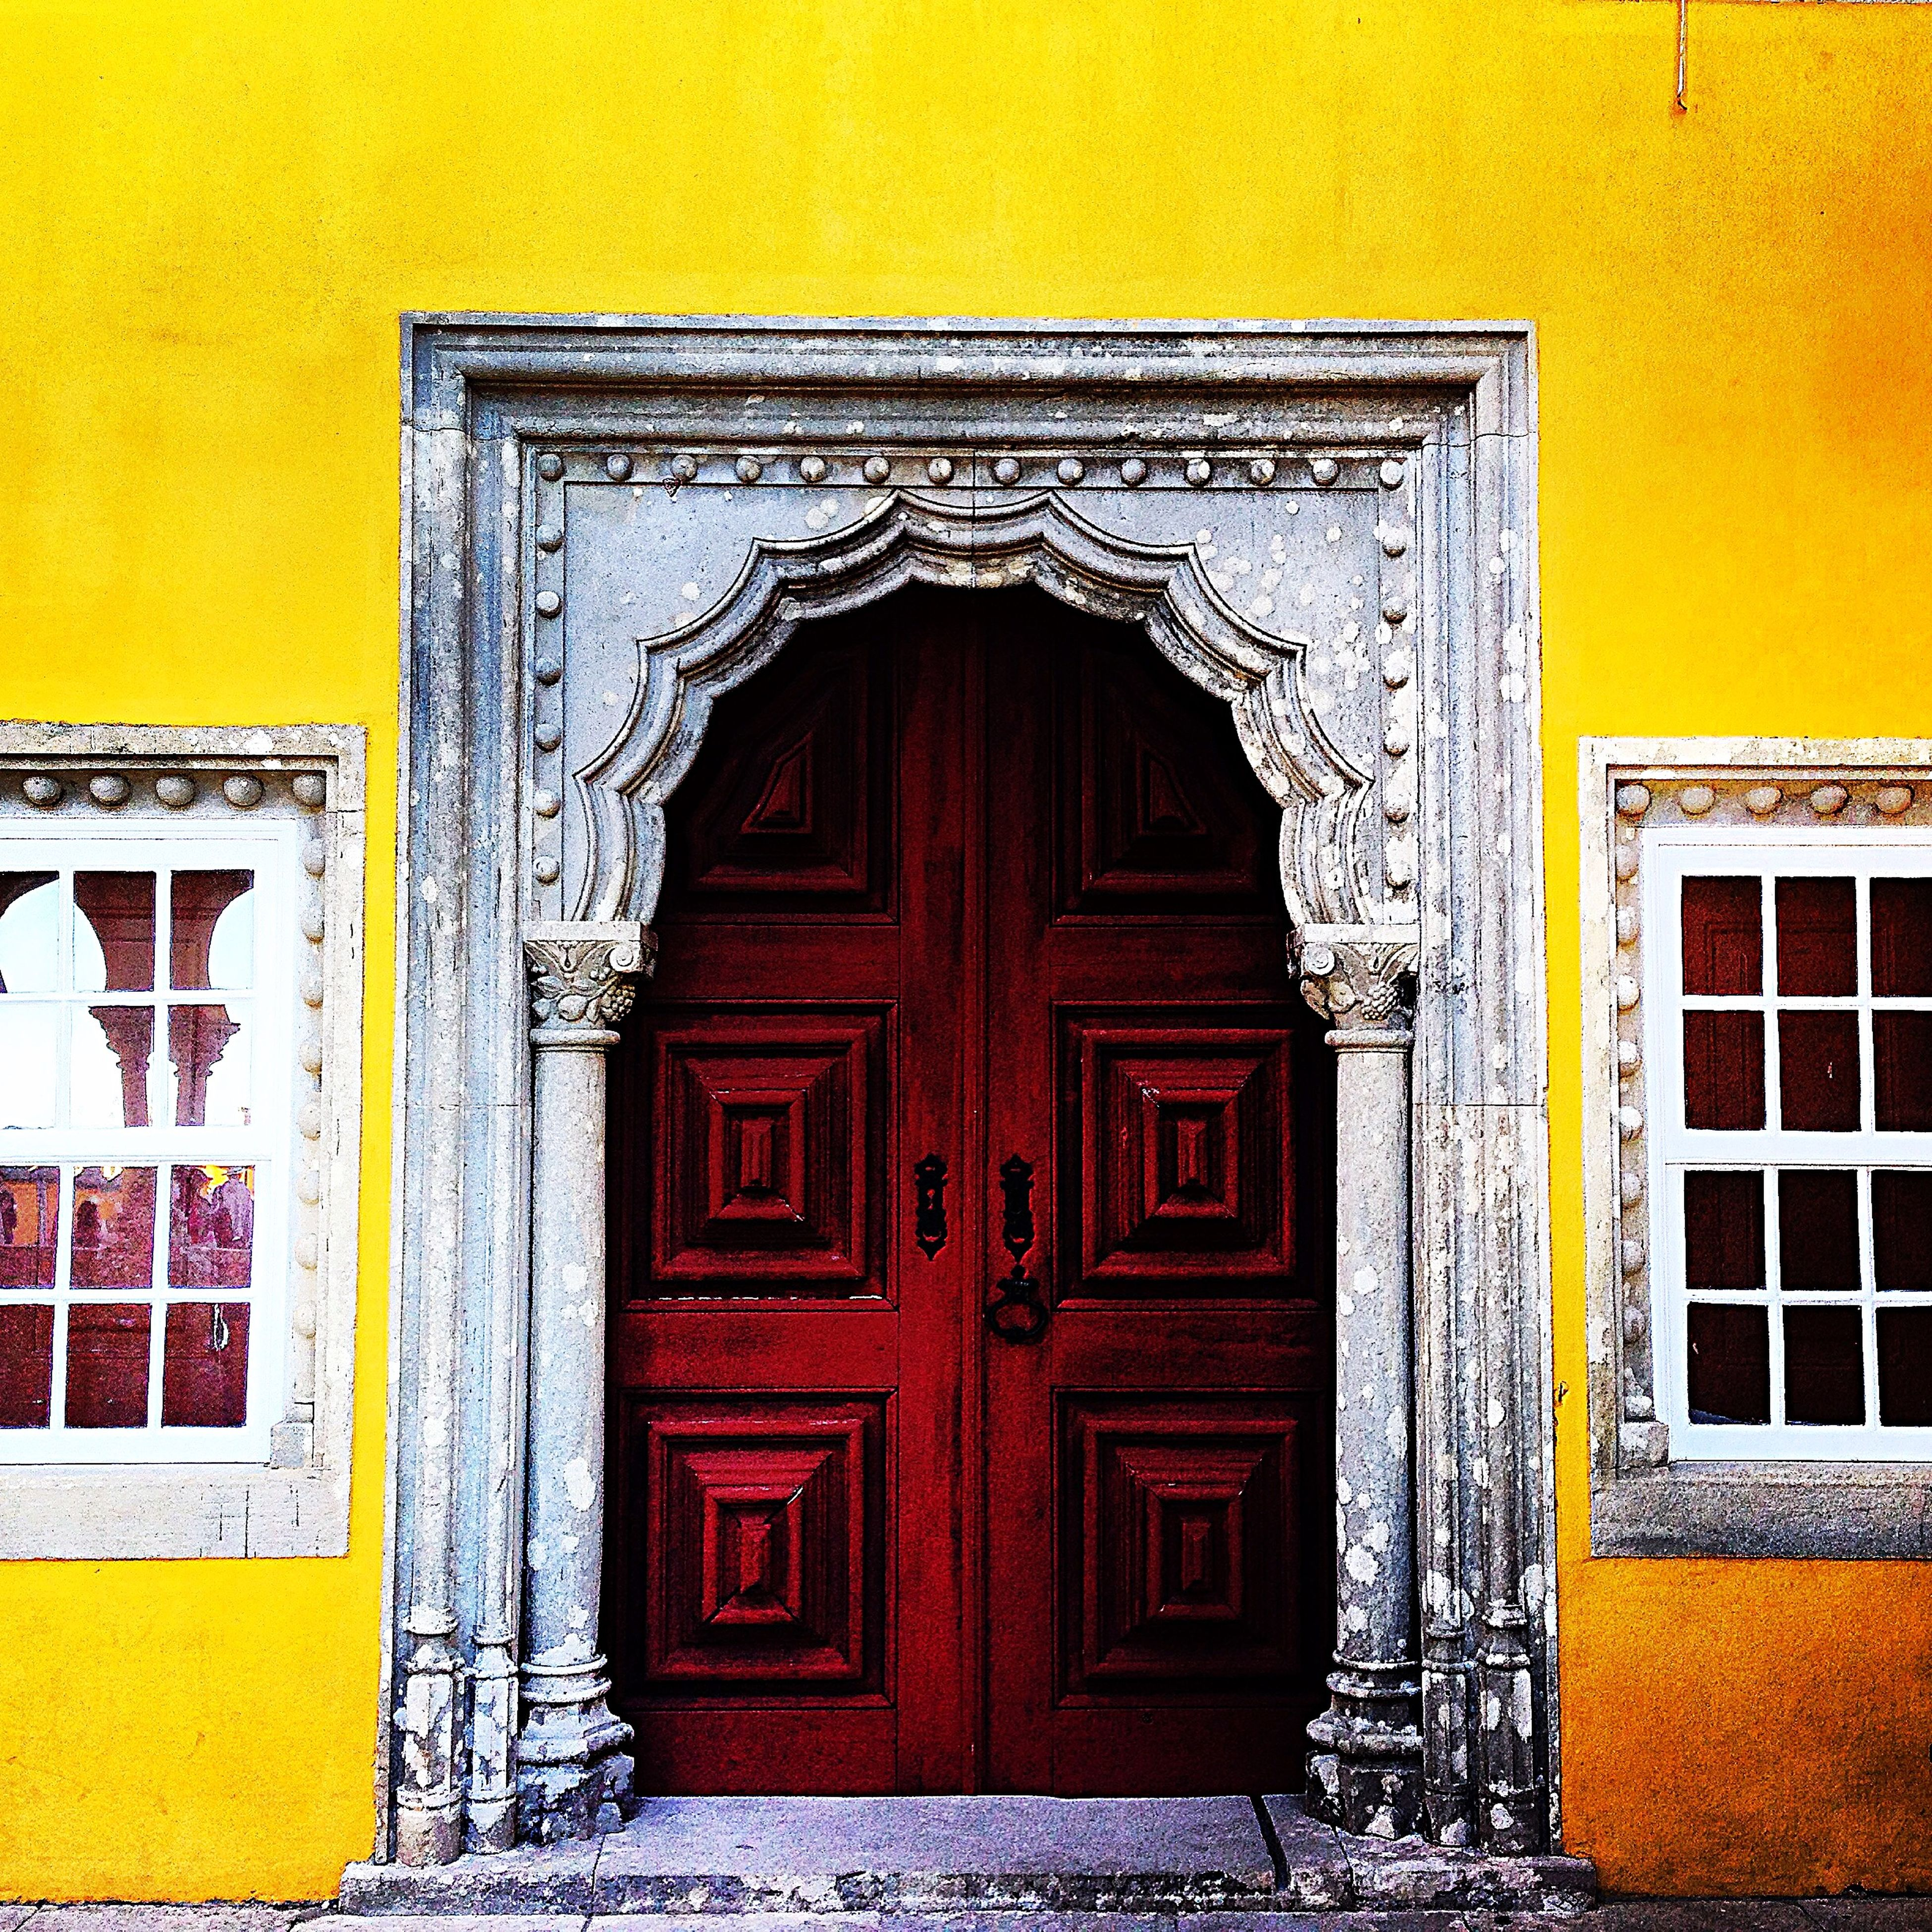 architecture, building exterior, built structure, yellow, door, closed, entrance, window, house, facade, outdoors, wall - building feature, orange color, arch, day, residential structure, no people, wall, building, old